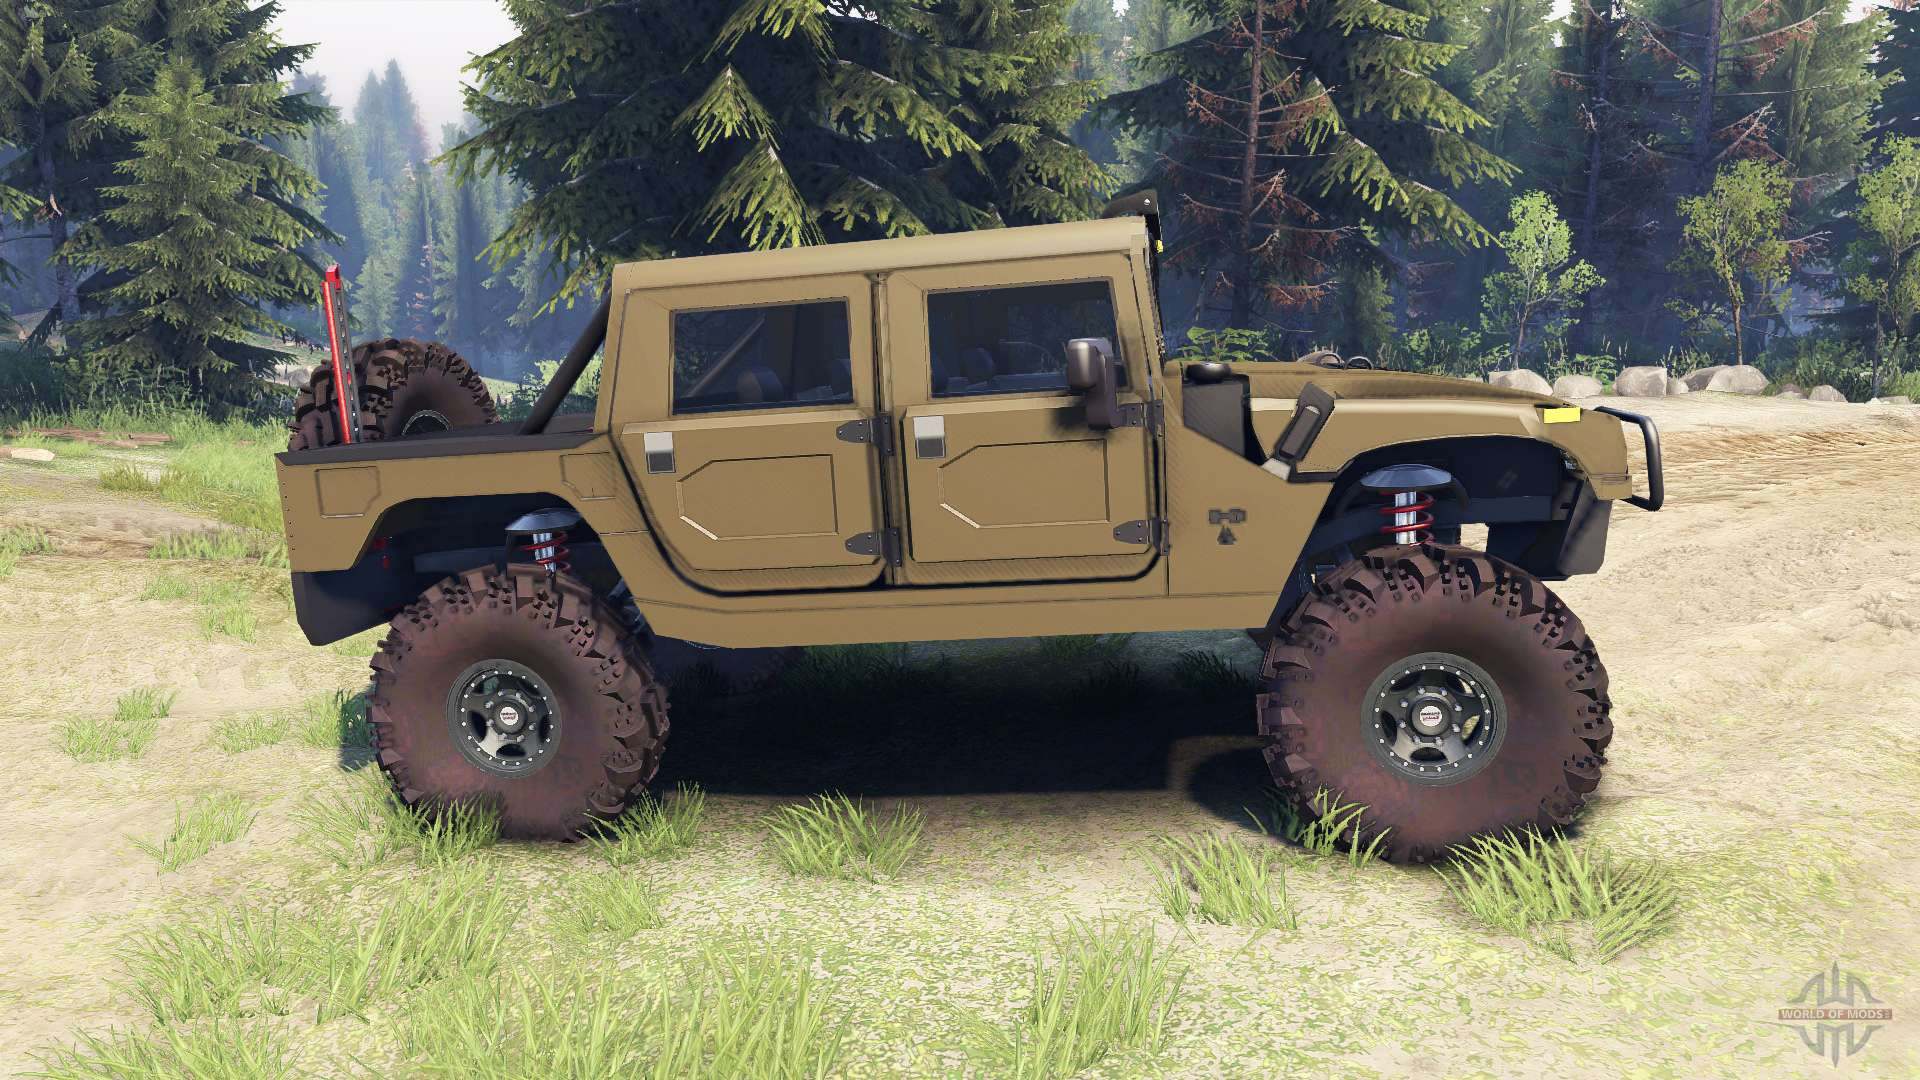 Army Hummer H1 Reverse Search